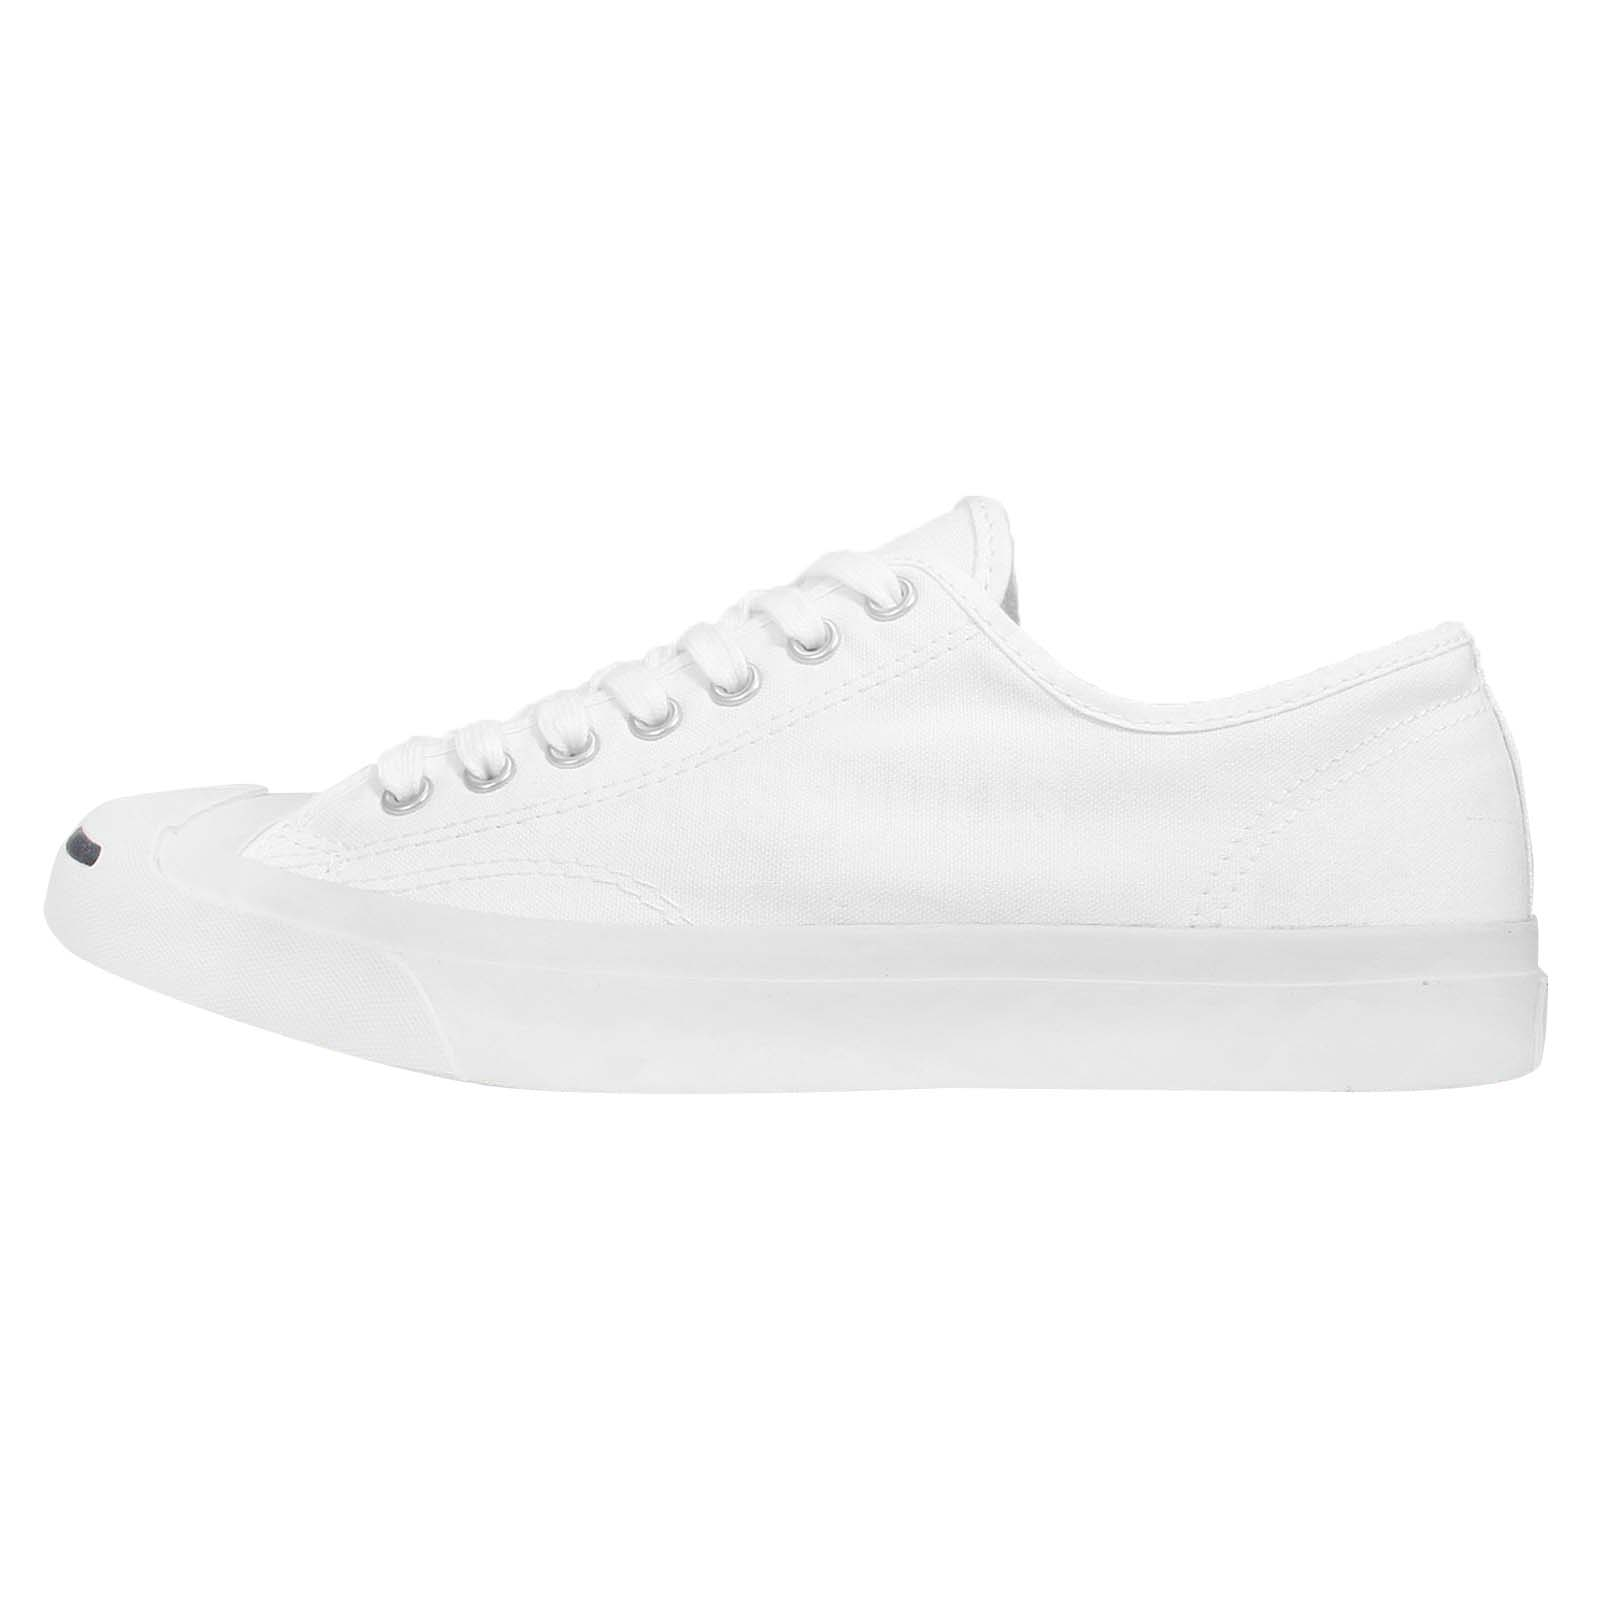 0fe5581d955 Converse Jack Purcell CP OX White Canvas Men Women Classic Casual Shoes  1Q698